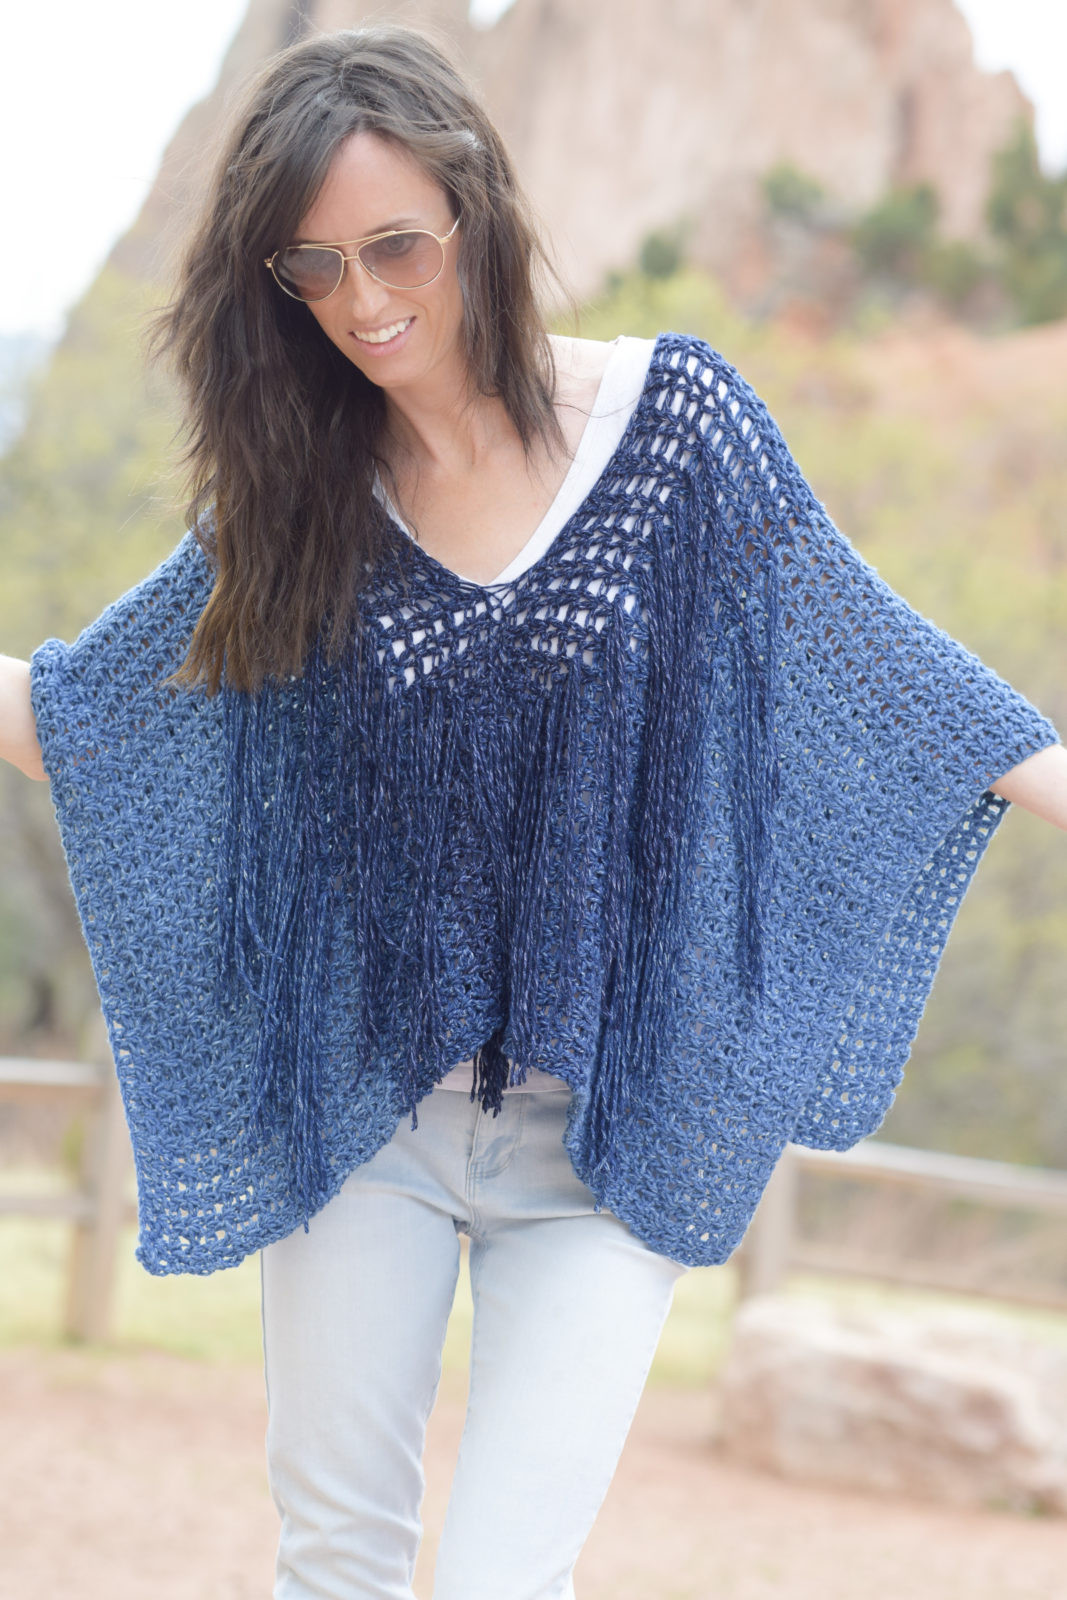 Crochet Poncho Pattern Fresh Azul V Mesh Easy Crochet Poncho Pattern – Mama In A Stitch Of Beautiful 41 Ideas Crochet Poncho Pattern